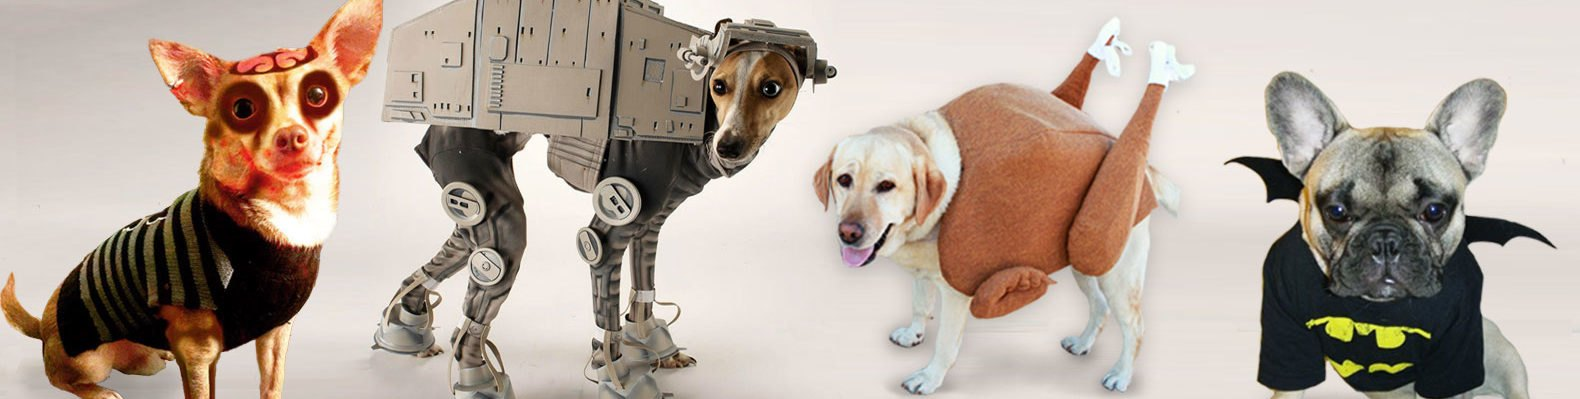 10 adorable diy halloween costumes for pets inhabitat green 10 adorable diy halloween costumes for pets inhabitat green design innovation architecture green building solutioingenieria Image collections